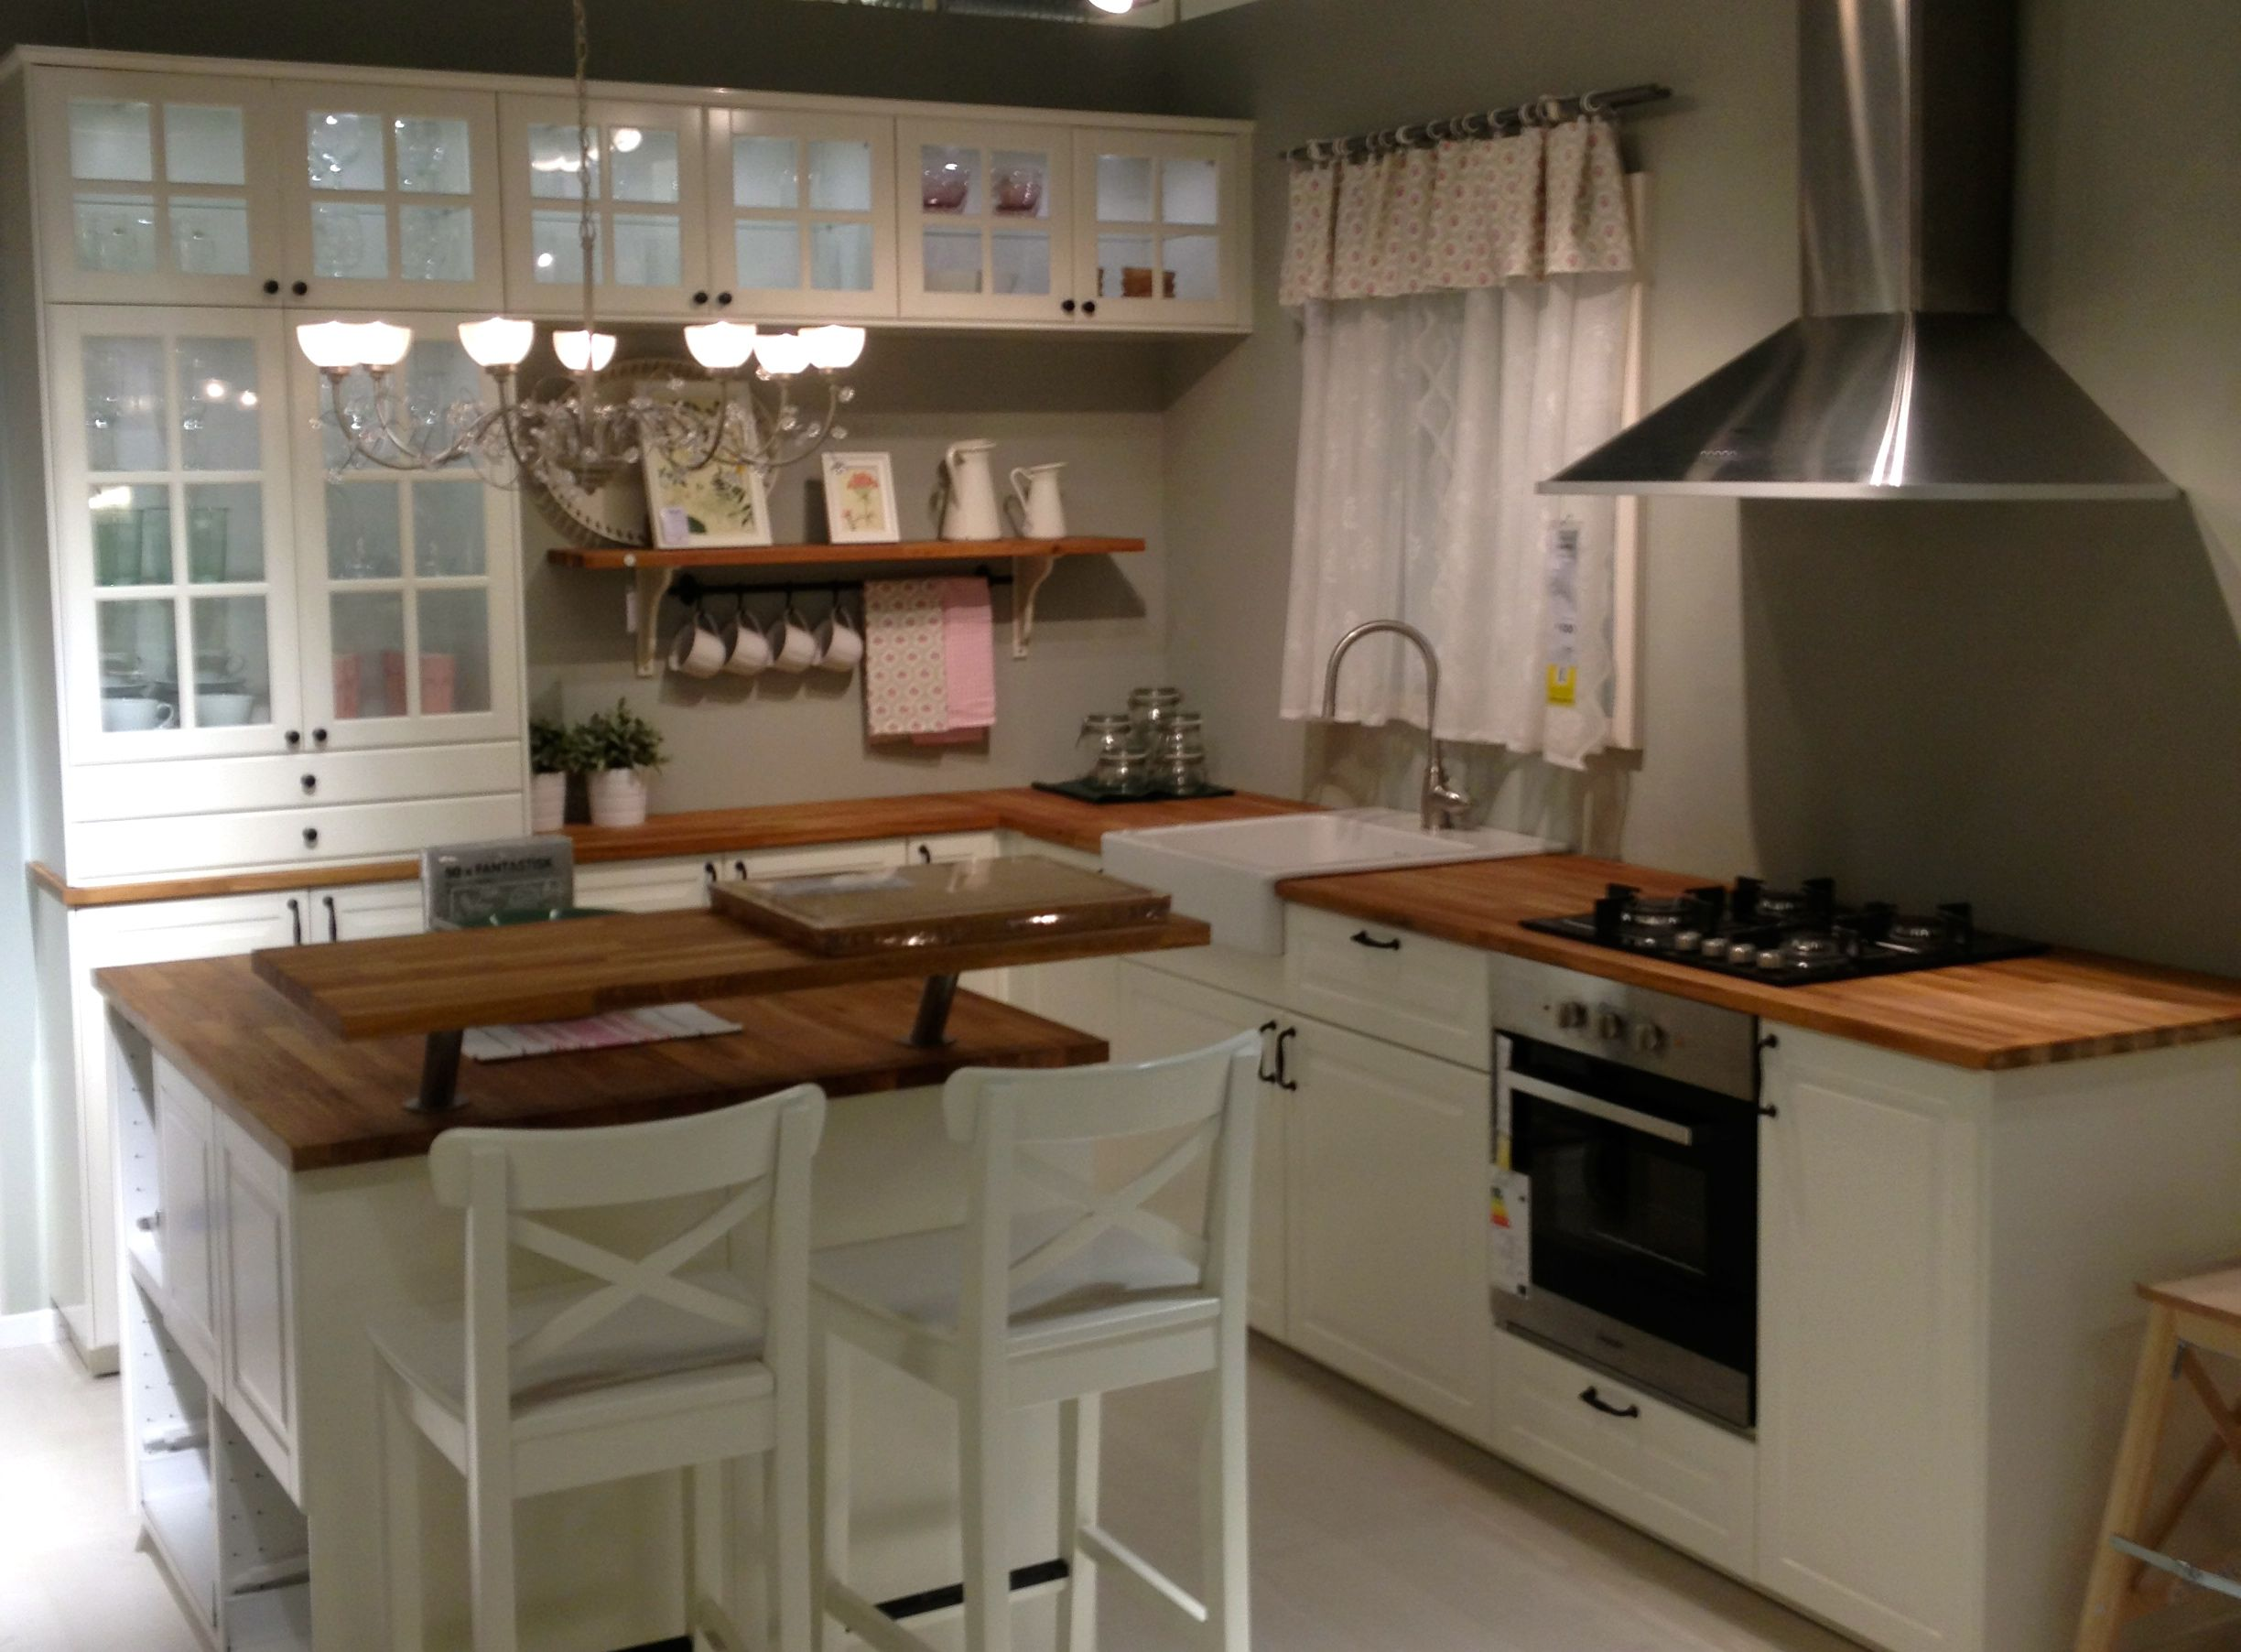 Bodbyn Kücheninsel Ikea Bodbyn Kitchen Google Search Home Sweet Home